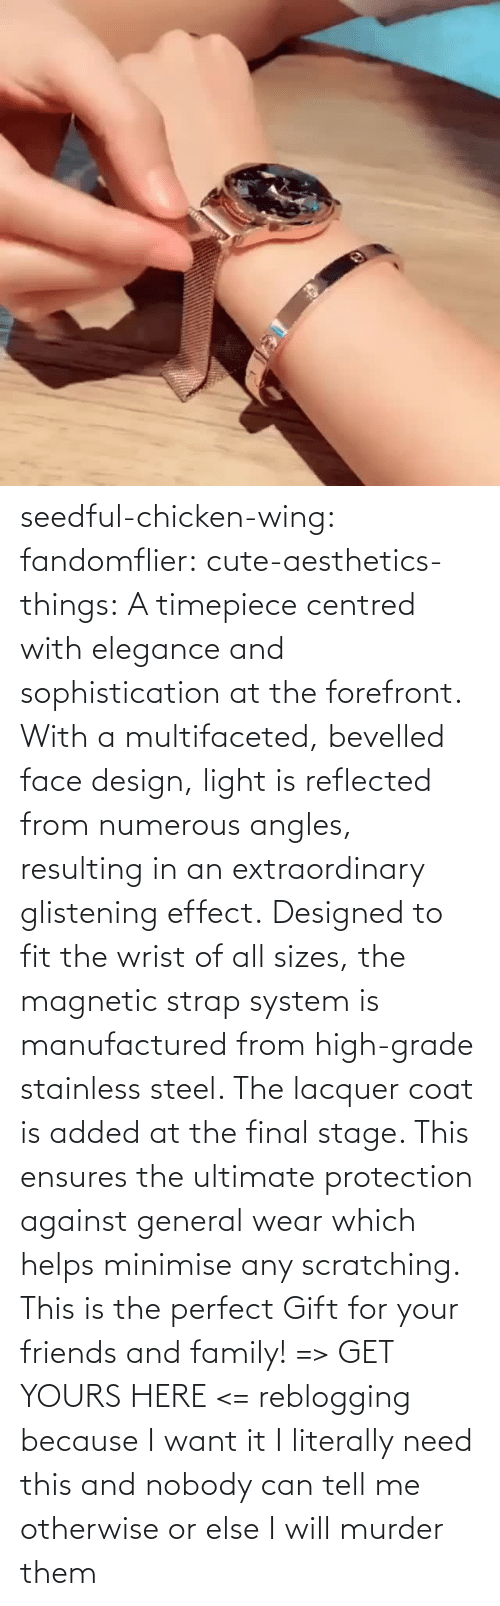 jpg: seedful-chicken-wing: fandomflier:  cute-aesthetics-things:   A timepiece centred with elegance and sophistication at the forefront. With a multifaceted, bevelled face design, light is reflected from numerous angles, resulting in an extraordinary glistening effect. Designed to fit the wrist of all sizes, the magnetic strap system is manufactured from high-grade stainless steel. The lacquer coat is added at the final stage. This ensures the ultimate protection against general wear which helps minimise any scratching. This is the perfect Gift for your friends and family! => GET YOURS HERE <=   reblogging because I want it  I literally need this and nobody can tell me otherwise or else I will murder them